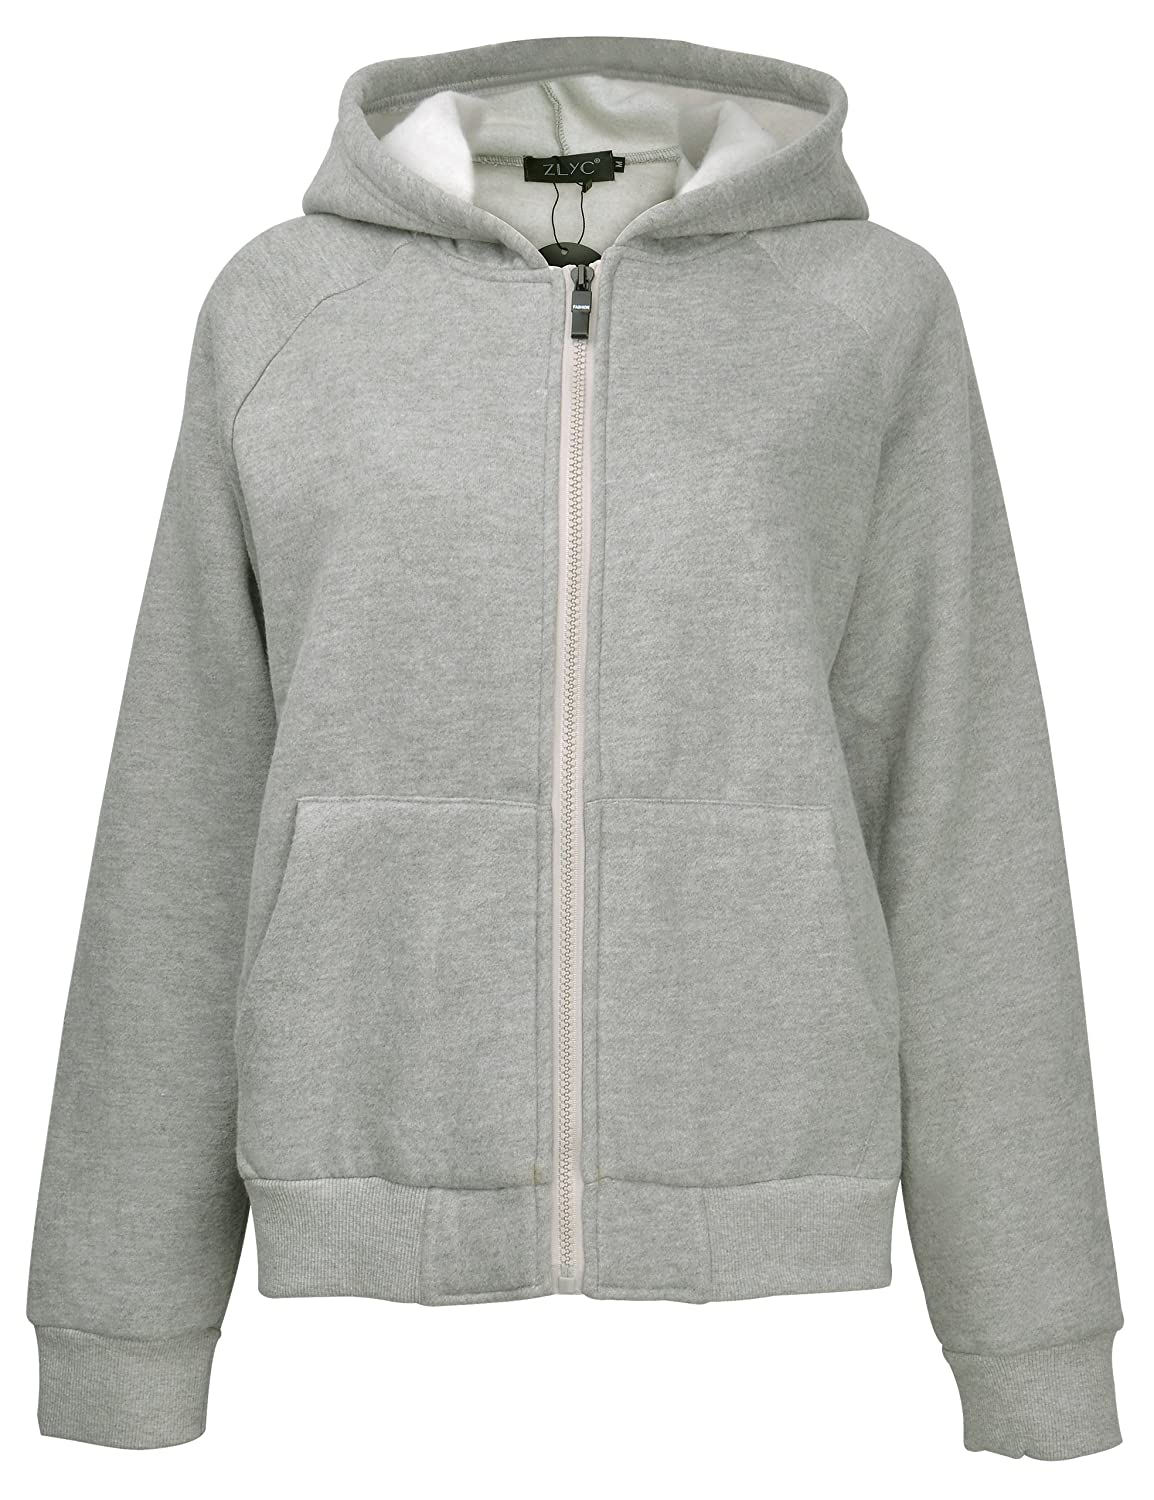 ZLYC Women Basic Crop Fit Full Zip Fleece Hoodie Sweatshirt Jacket with Pockets Light Grey) JC-HS-8088-LGR-L_CA